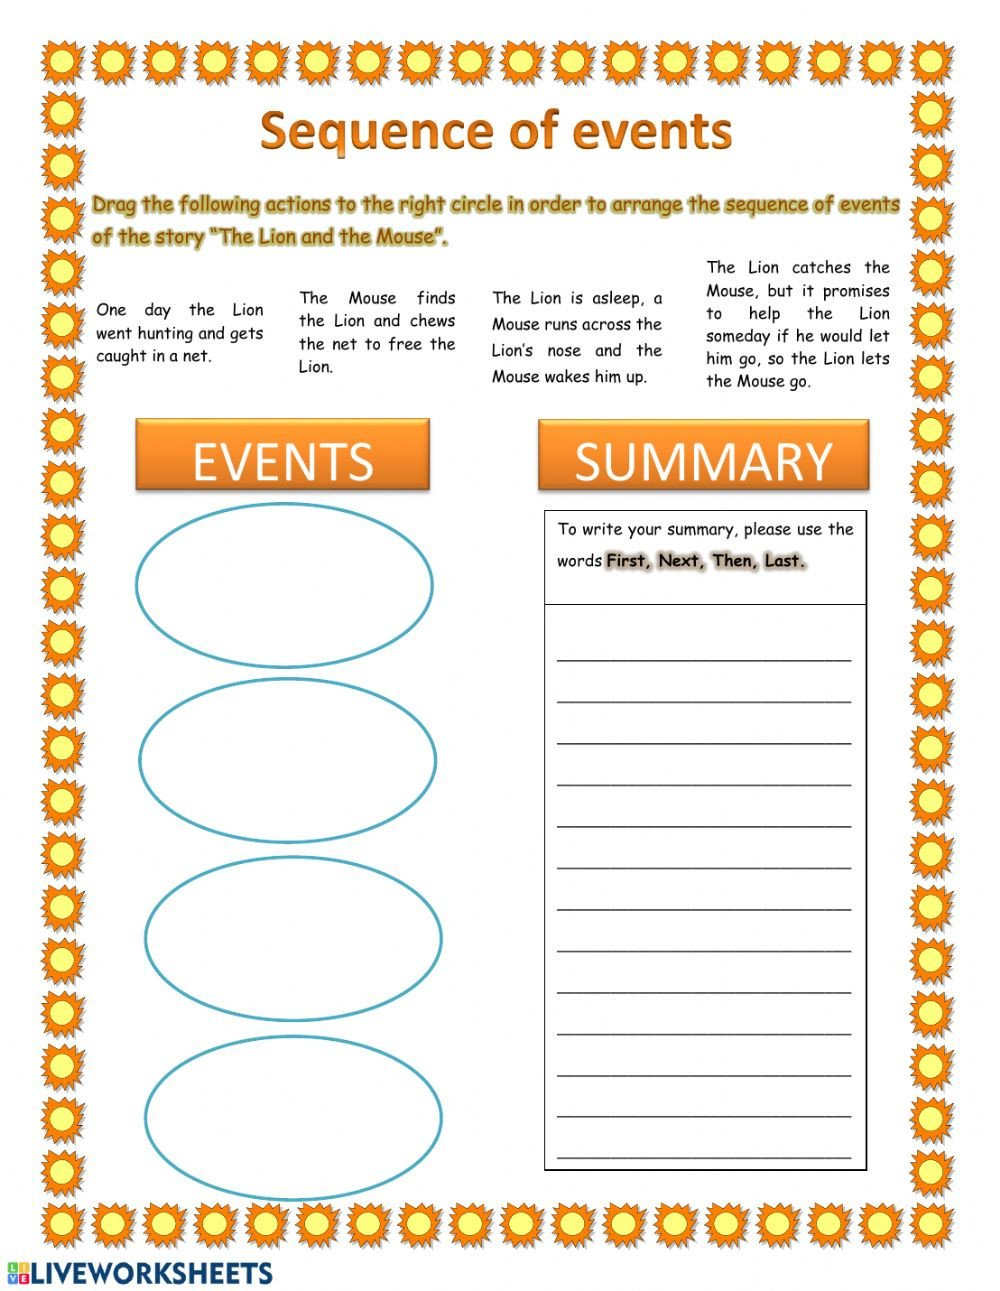 Sequence Of events Worksheets Pdf Sequence Of events and Summary Interactive Worksheet